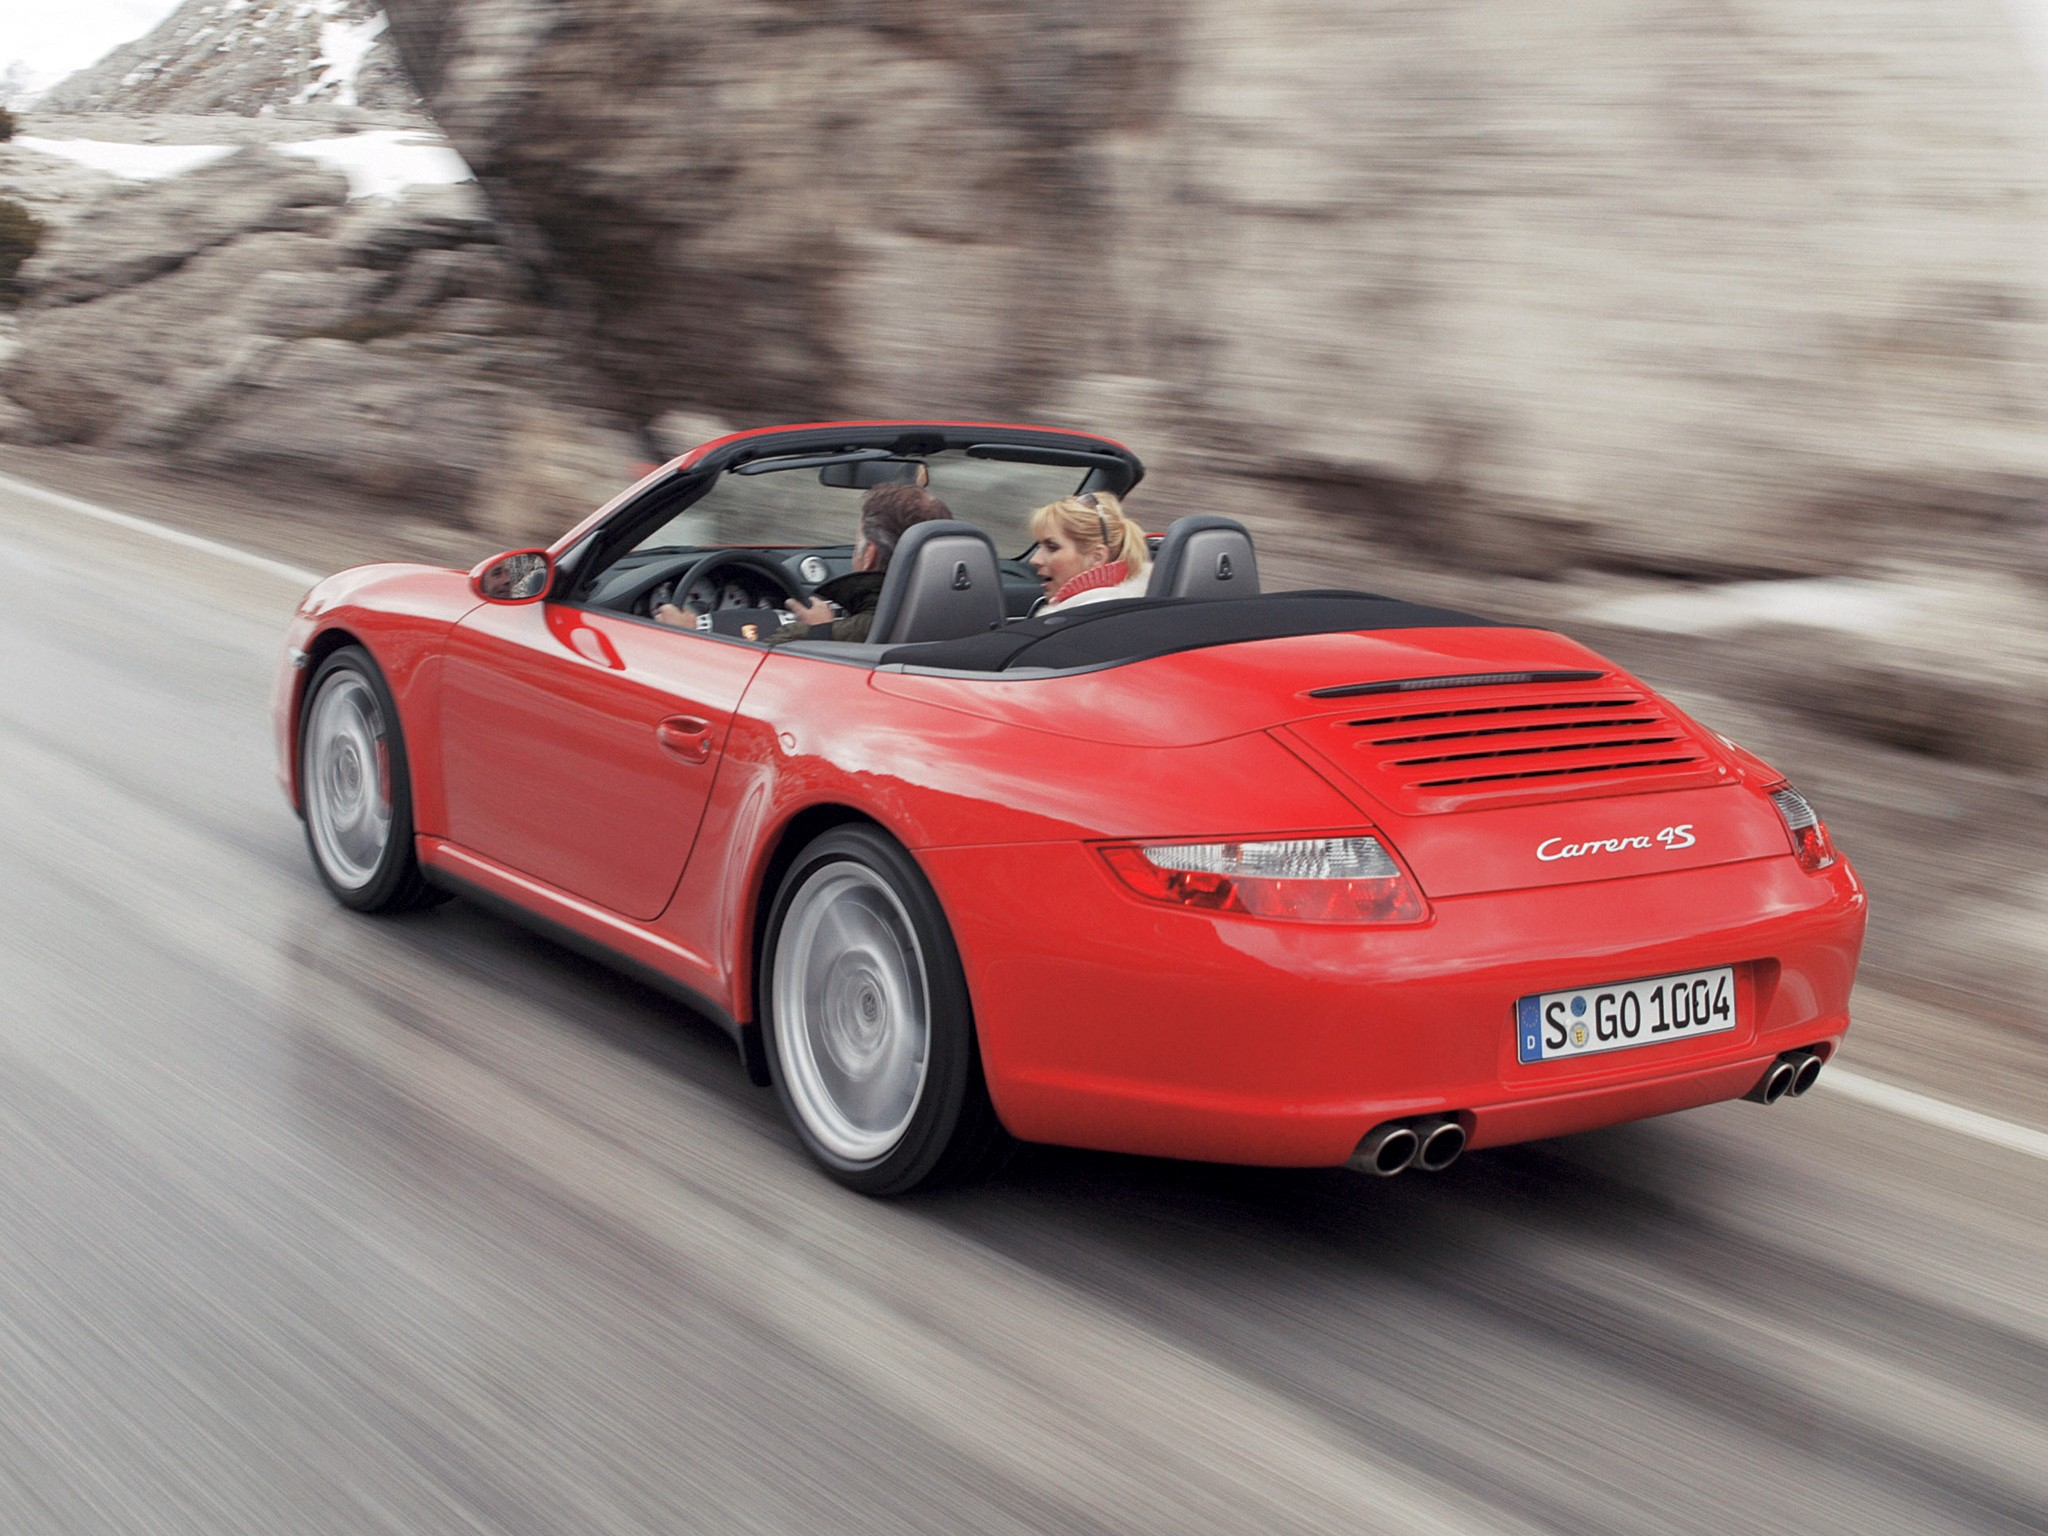 2019 Porsche 911 Carrera 4S Cabriolet photo - 4